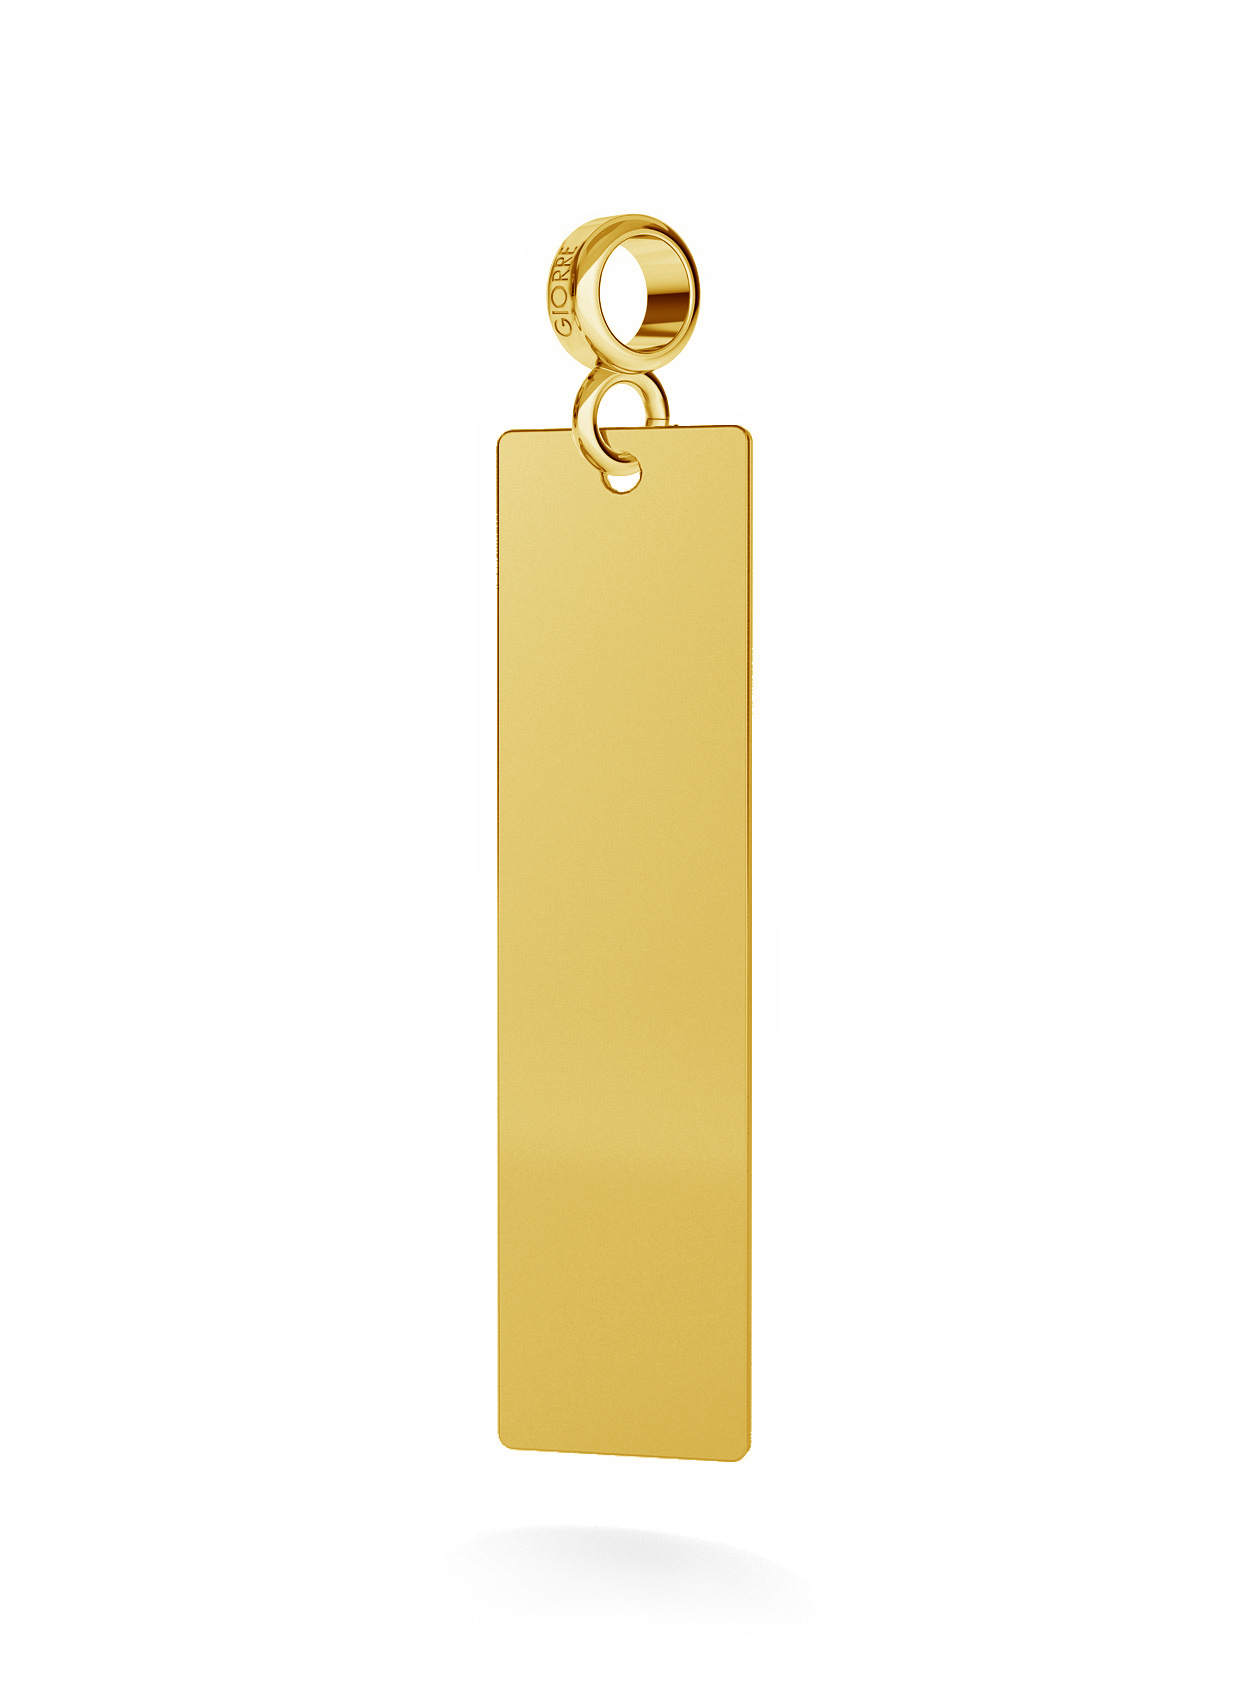 CHARM WITH ENGRAVE, RECTANGLE, SILVER 925, RHODIUM OR GOLD PLATED